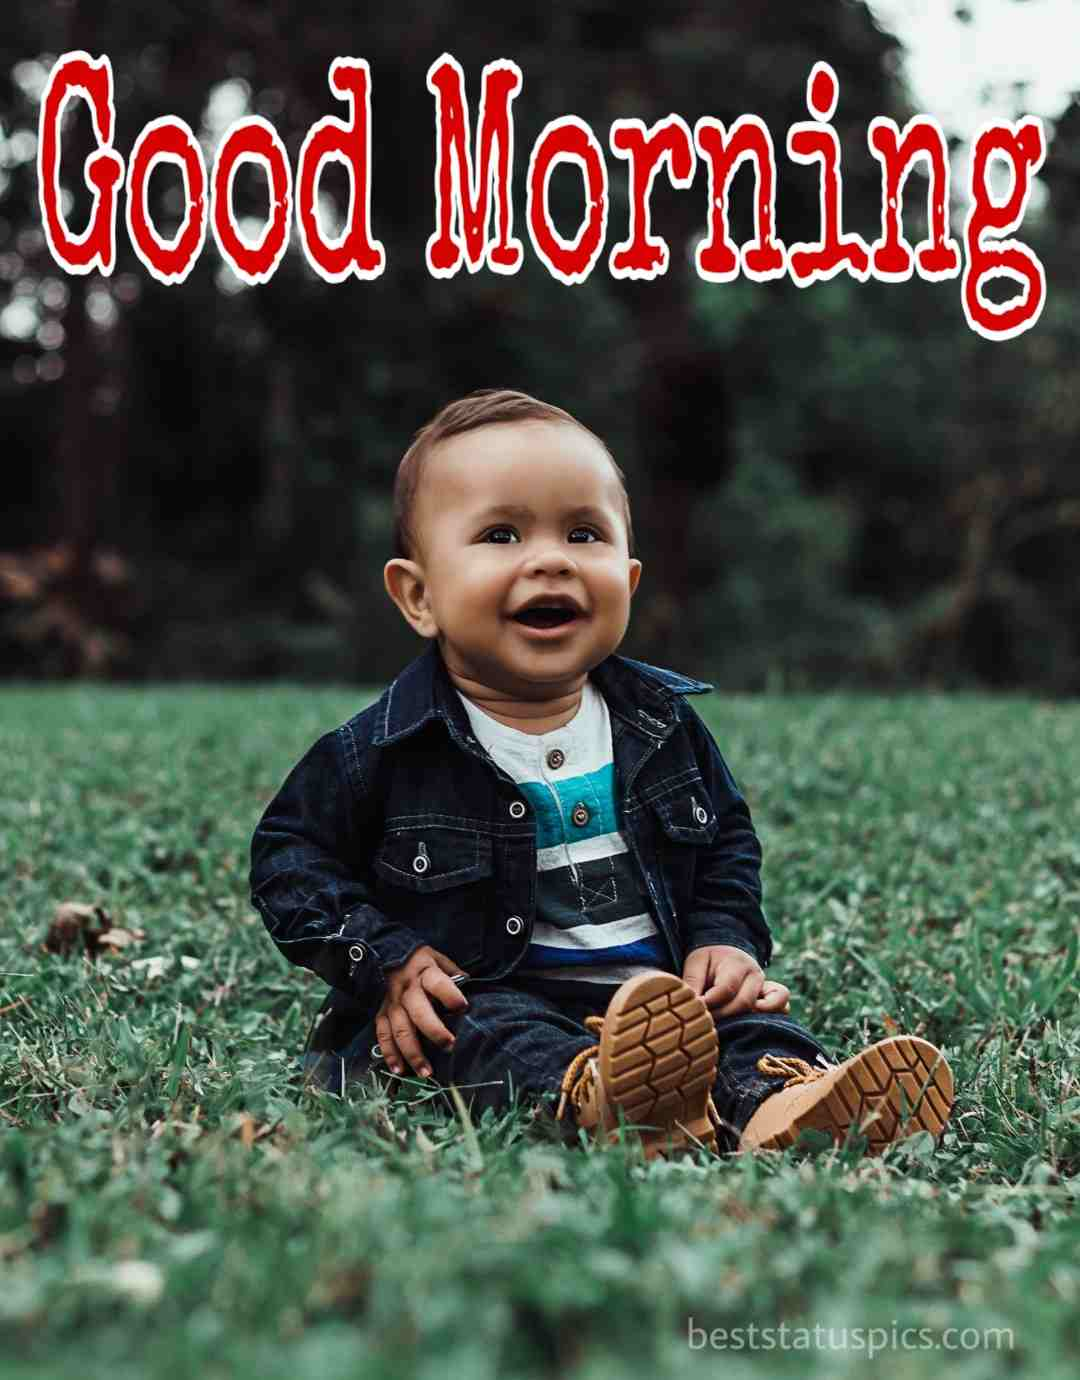 Good morning baby boy images for facebook